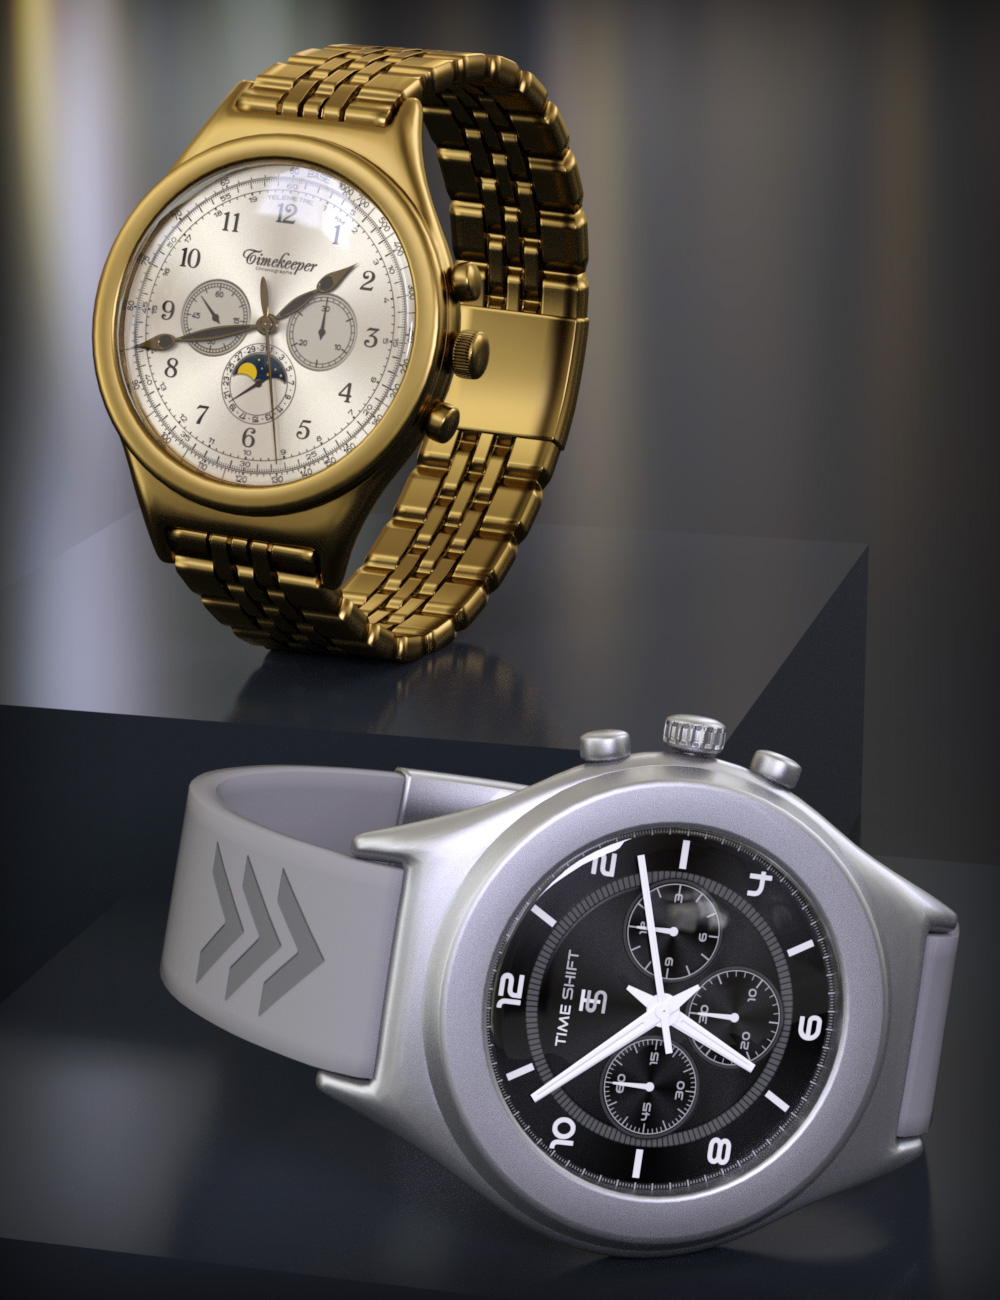 Varied Round Watches for Round Wristwatch by: esha, 3D Models by Daz 3D